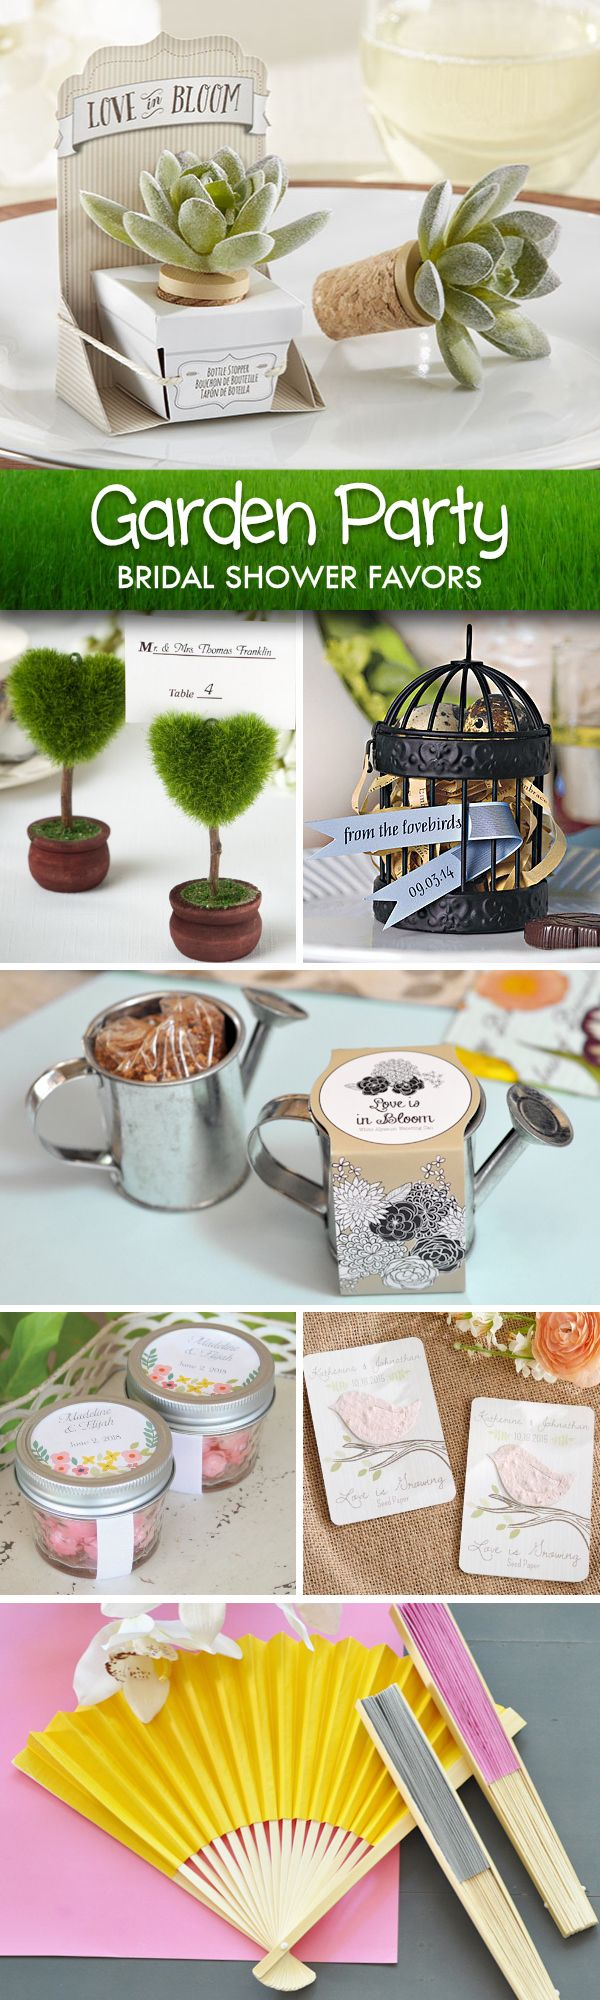 country style wedding shower ideas%0A Offers garden wedding favors  wild flower seed favors  butterfly placecard  holders and calla lily flower favors that are perfect for any garden or